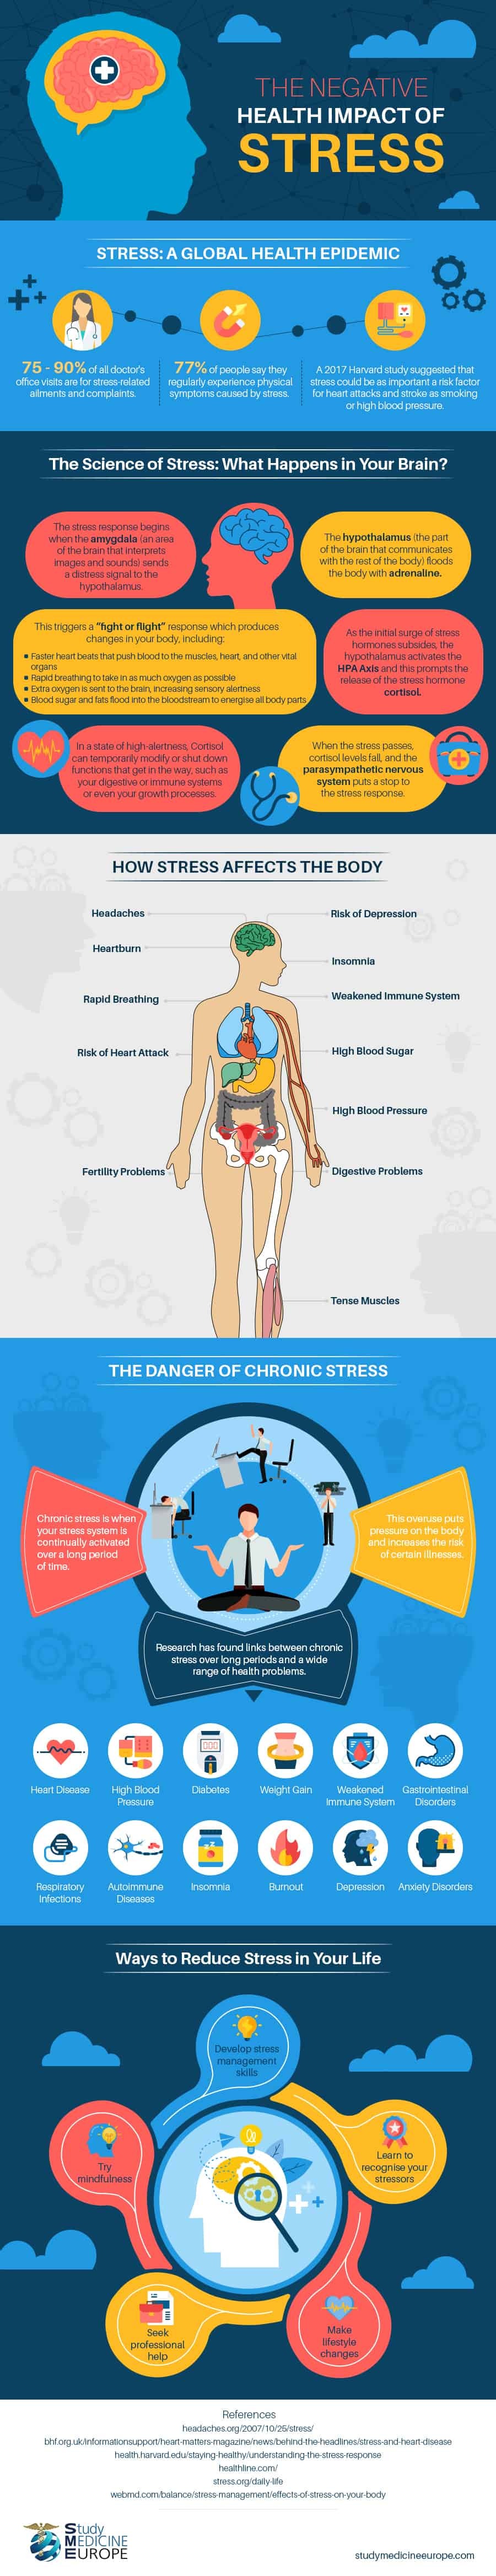 Negative impact of stress infographic